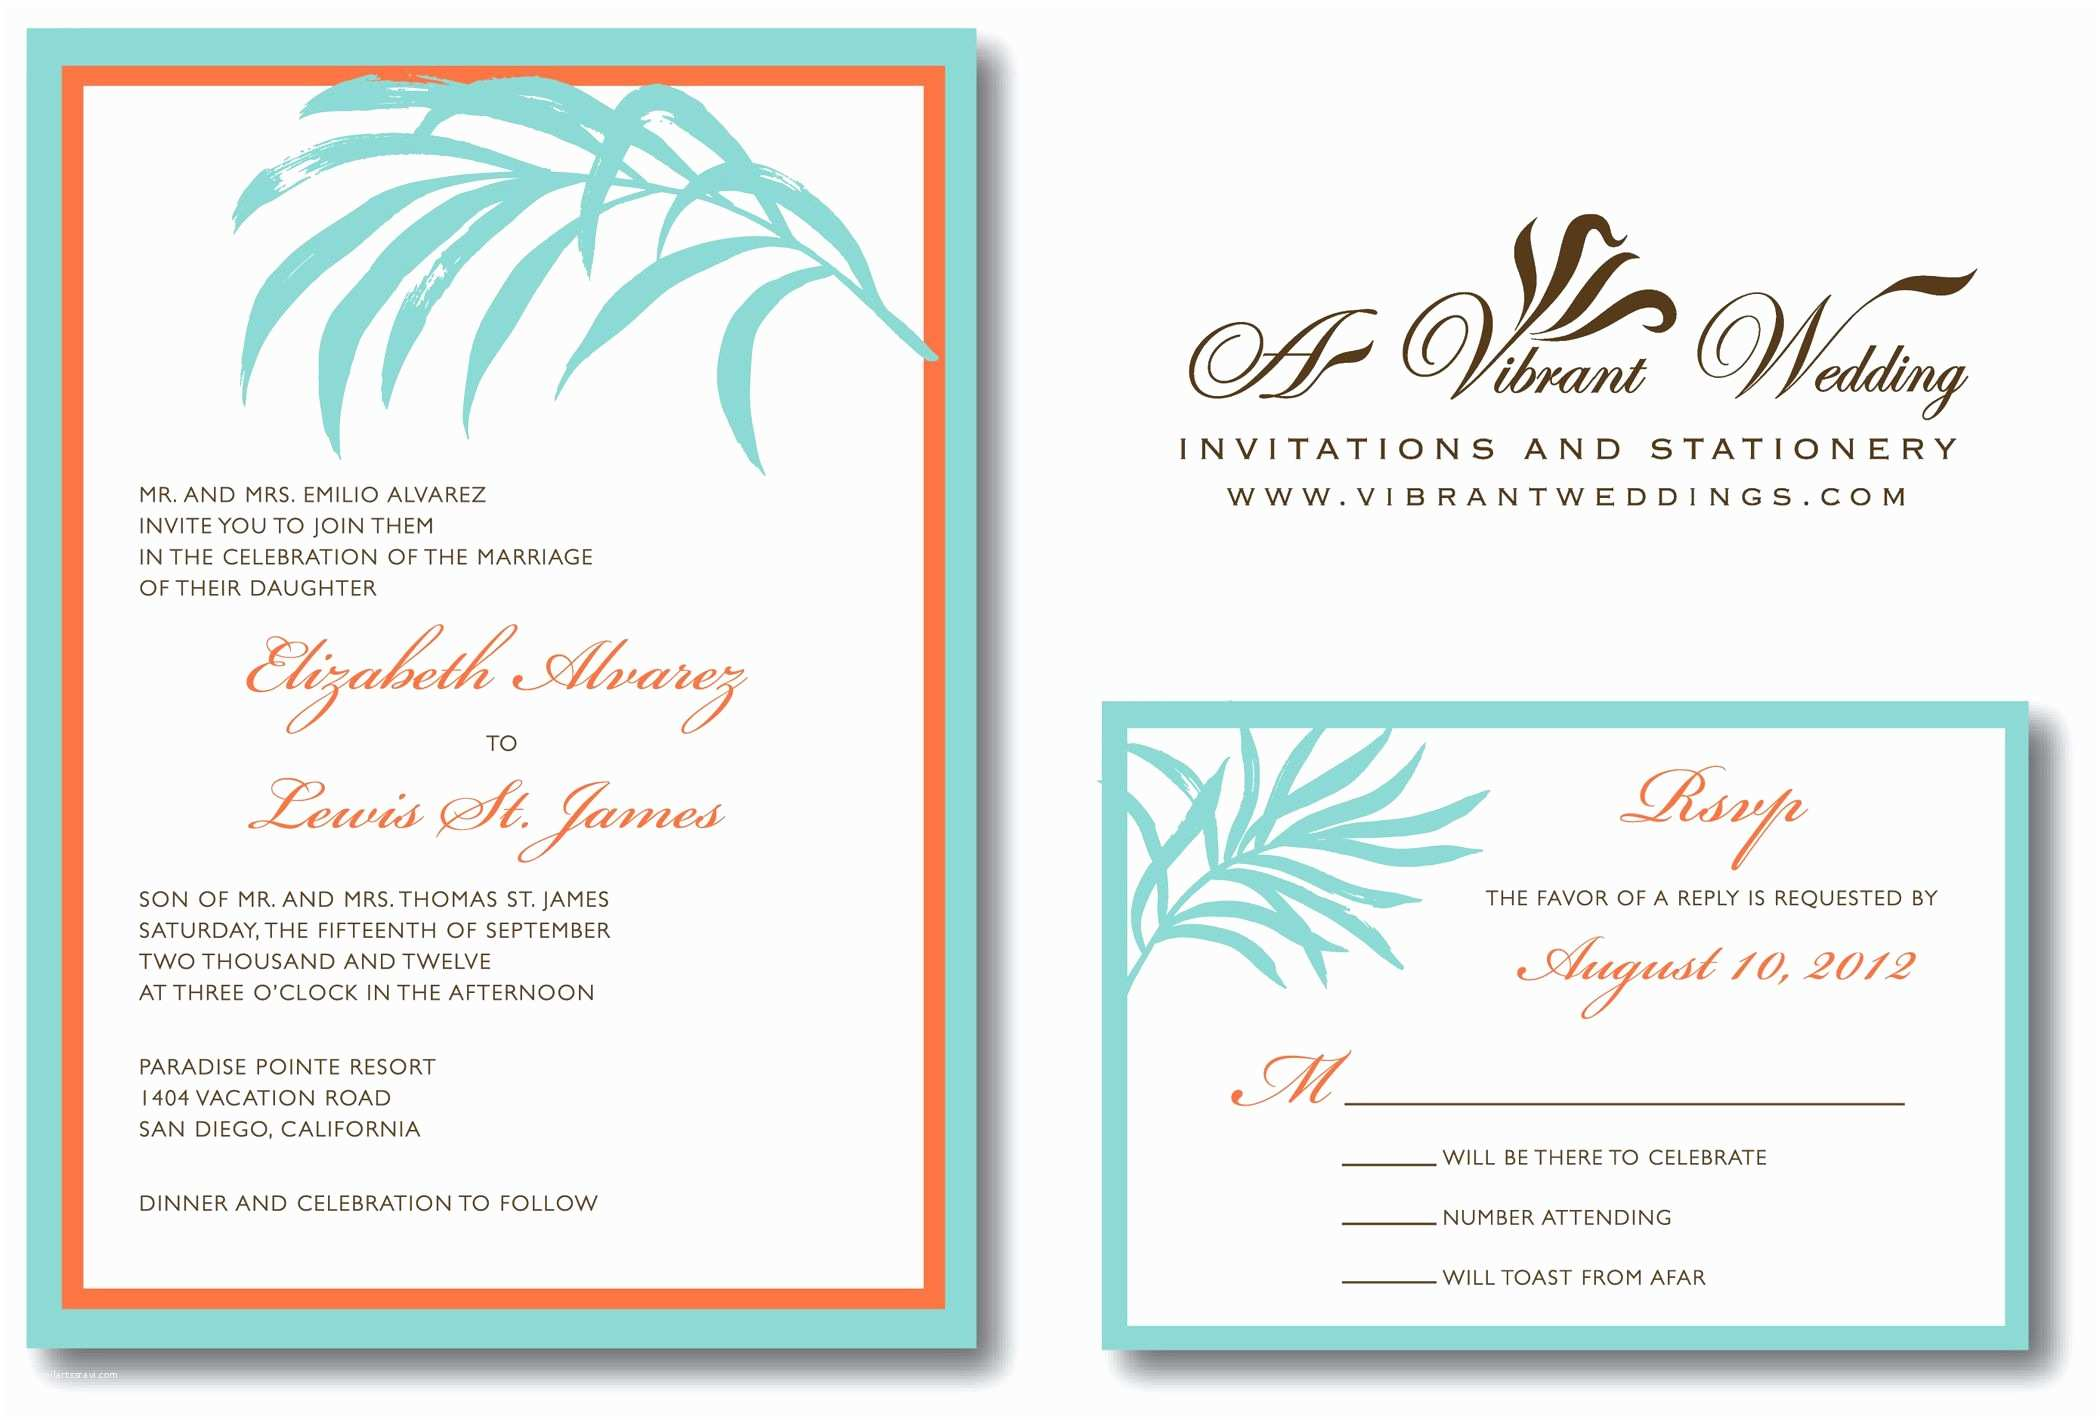 Wedding Invitations and Response Cards All In One Beach Wedding Invitation Rsvp In Invitation Card Meaning